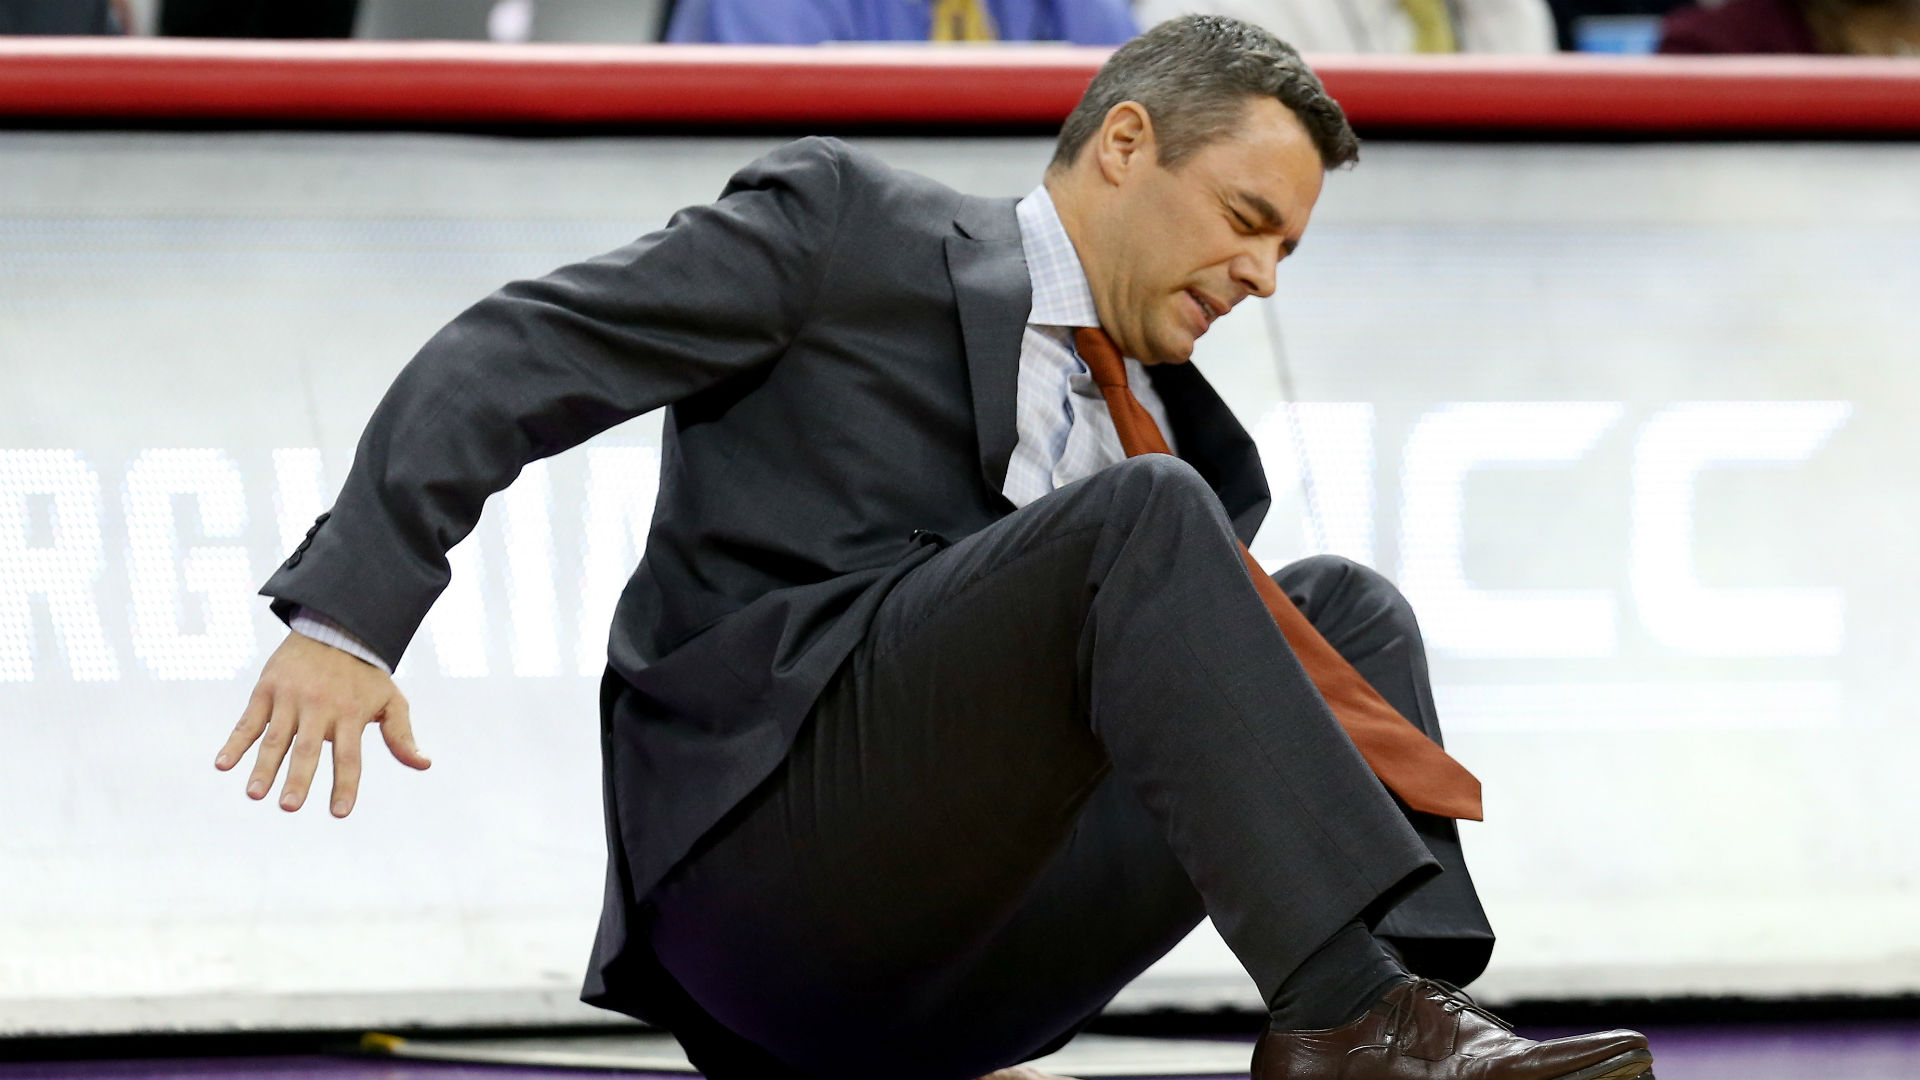 Virginia basketball coach collapsed on sideline during team's first-round NCAA game